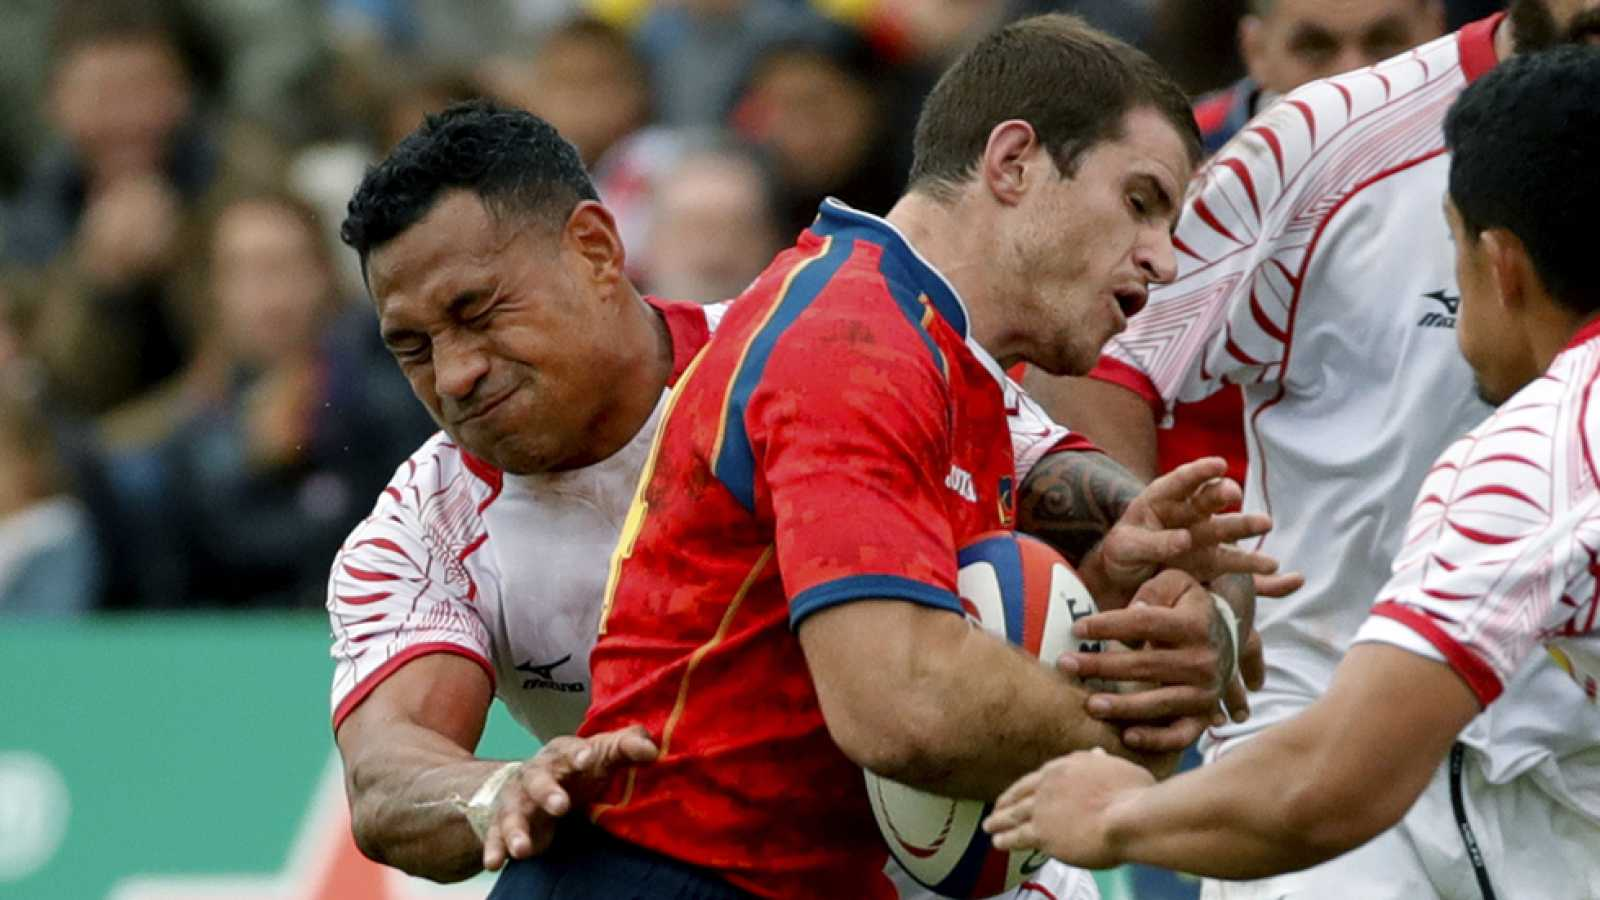 Rugby - Test Match World. Masculino: España - Tonga - ver ahora